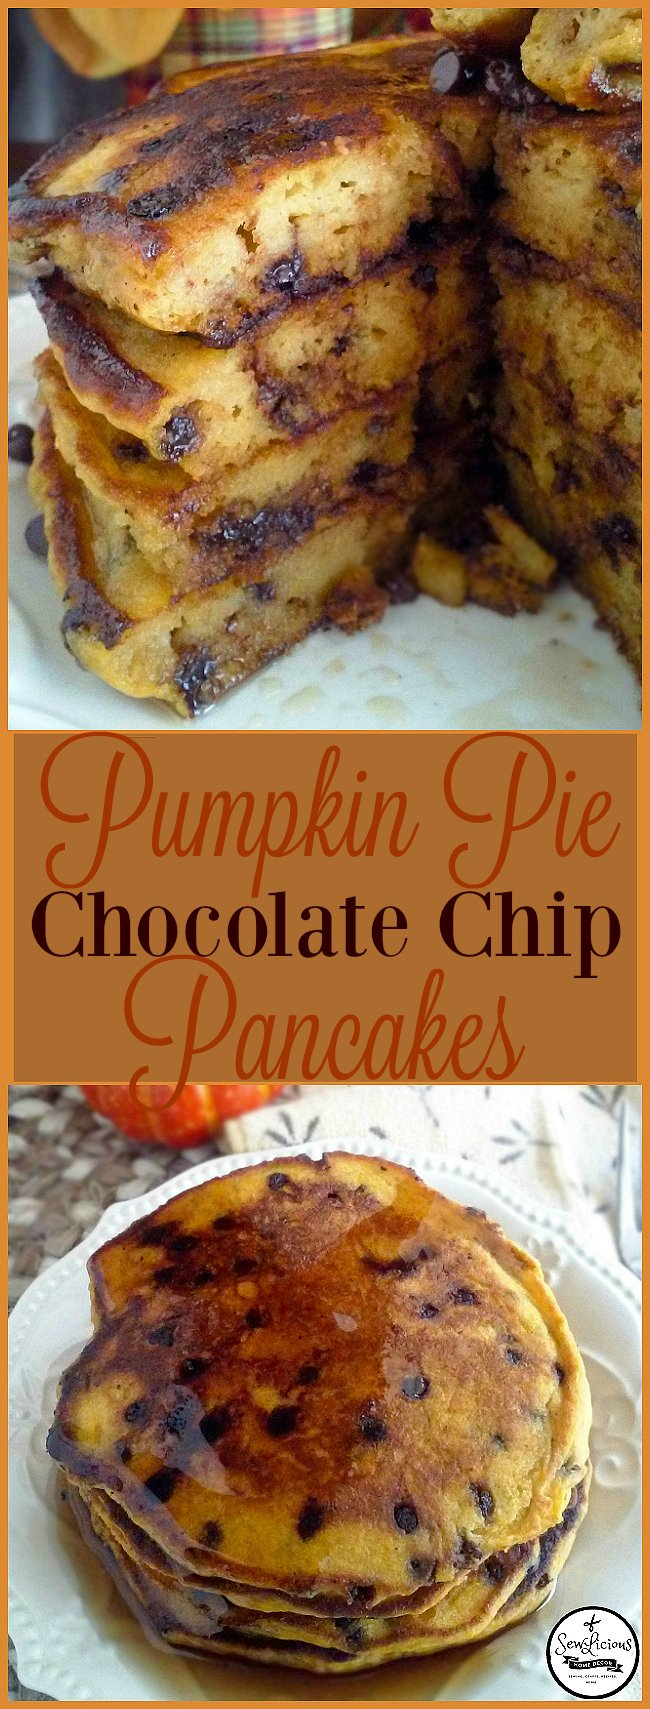 bring-in-the-fall-season-with-these-pumpkin-pie-chocolate-chip-pancakes-sewlicioushomedecor-com